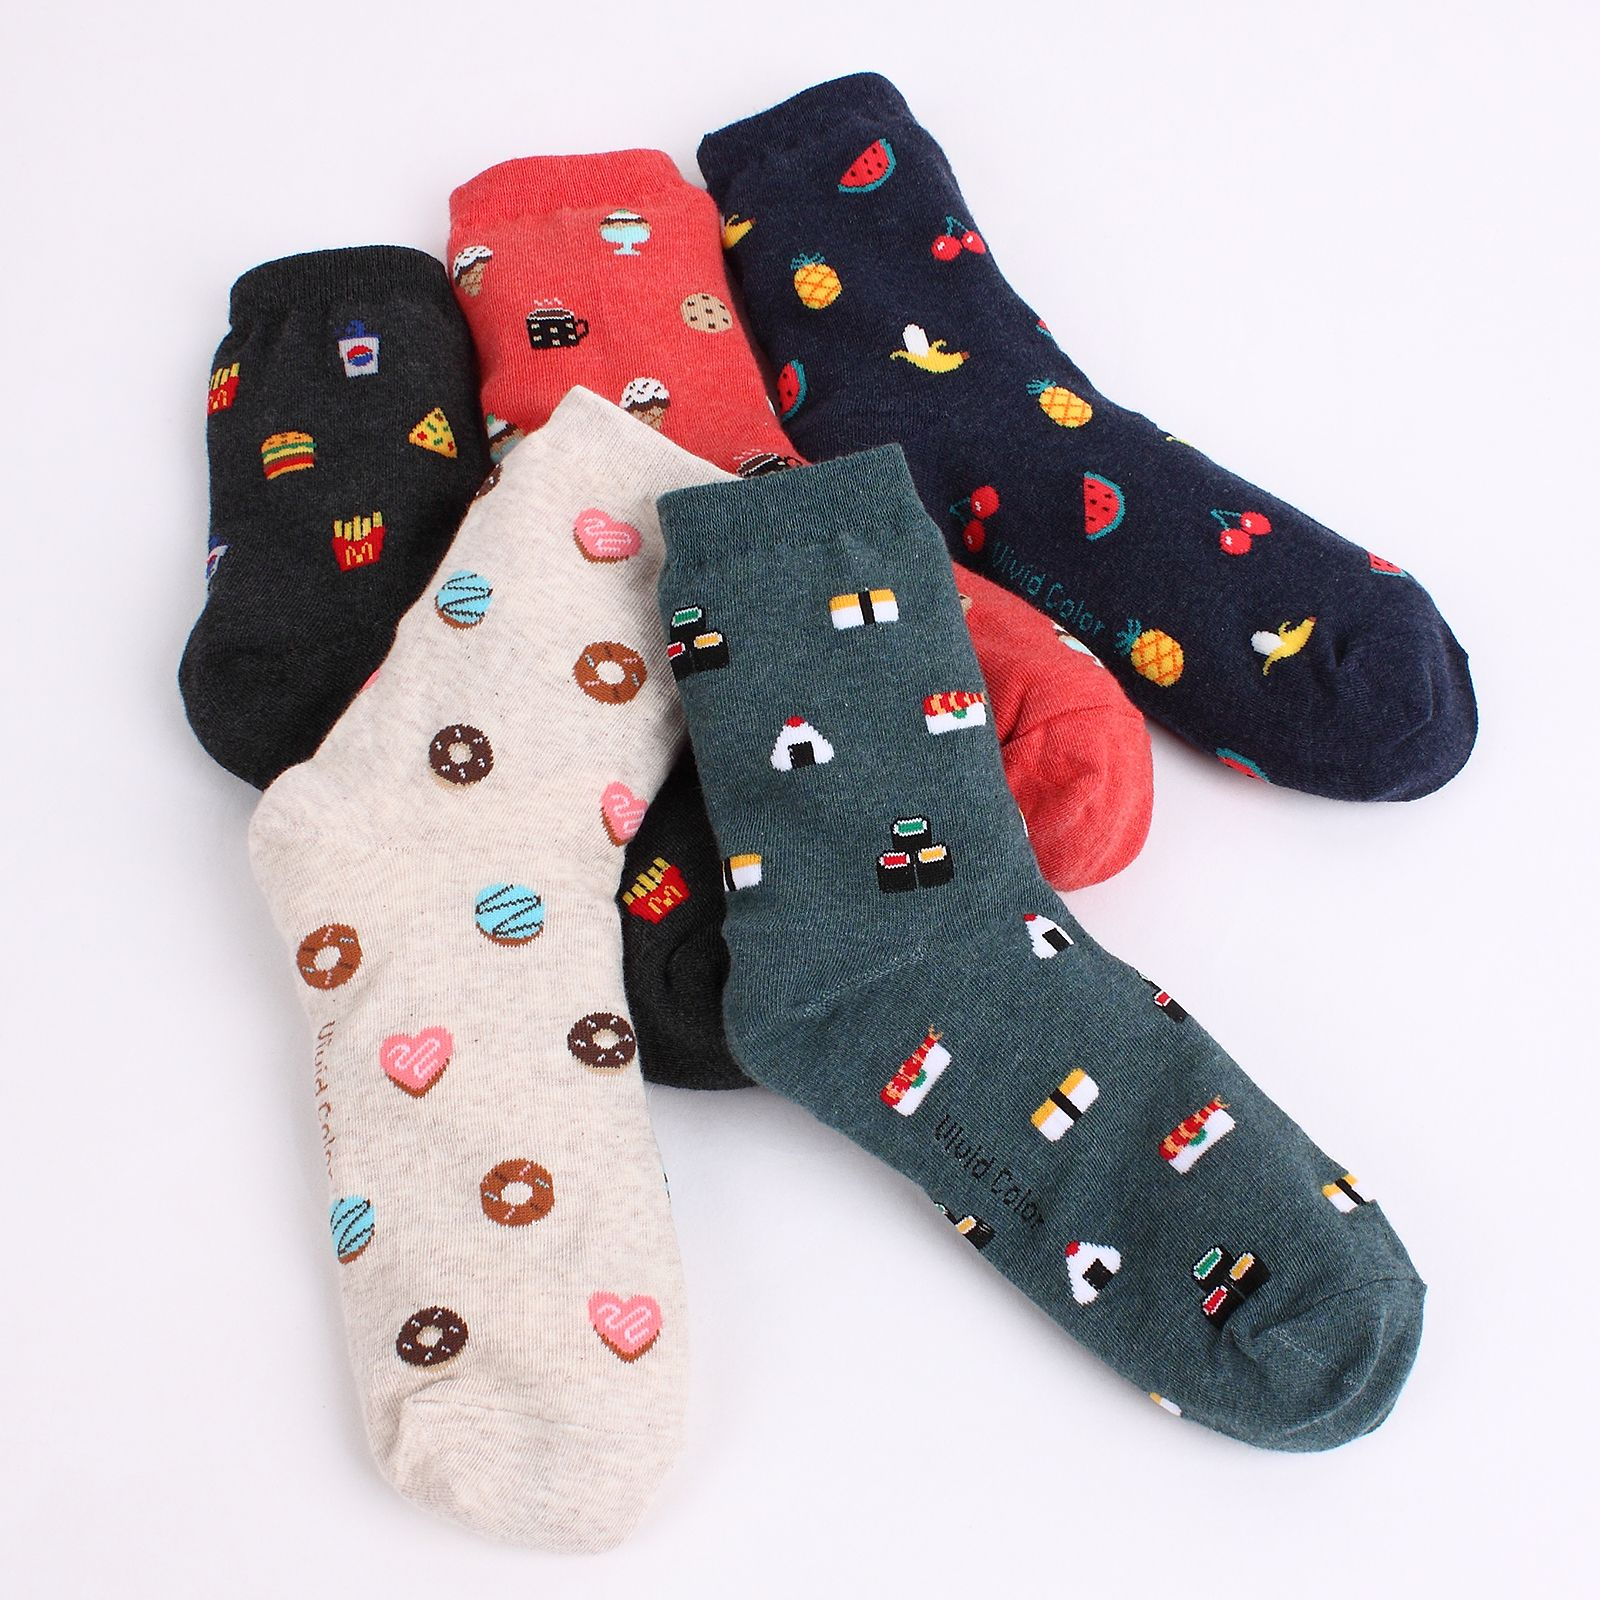 Cute Unisex Funny Casual Crew Socks Athletic Socks For Boys Girls Kids Teenagers